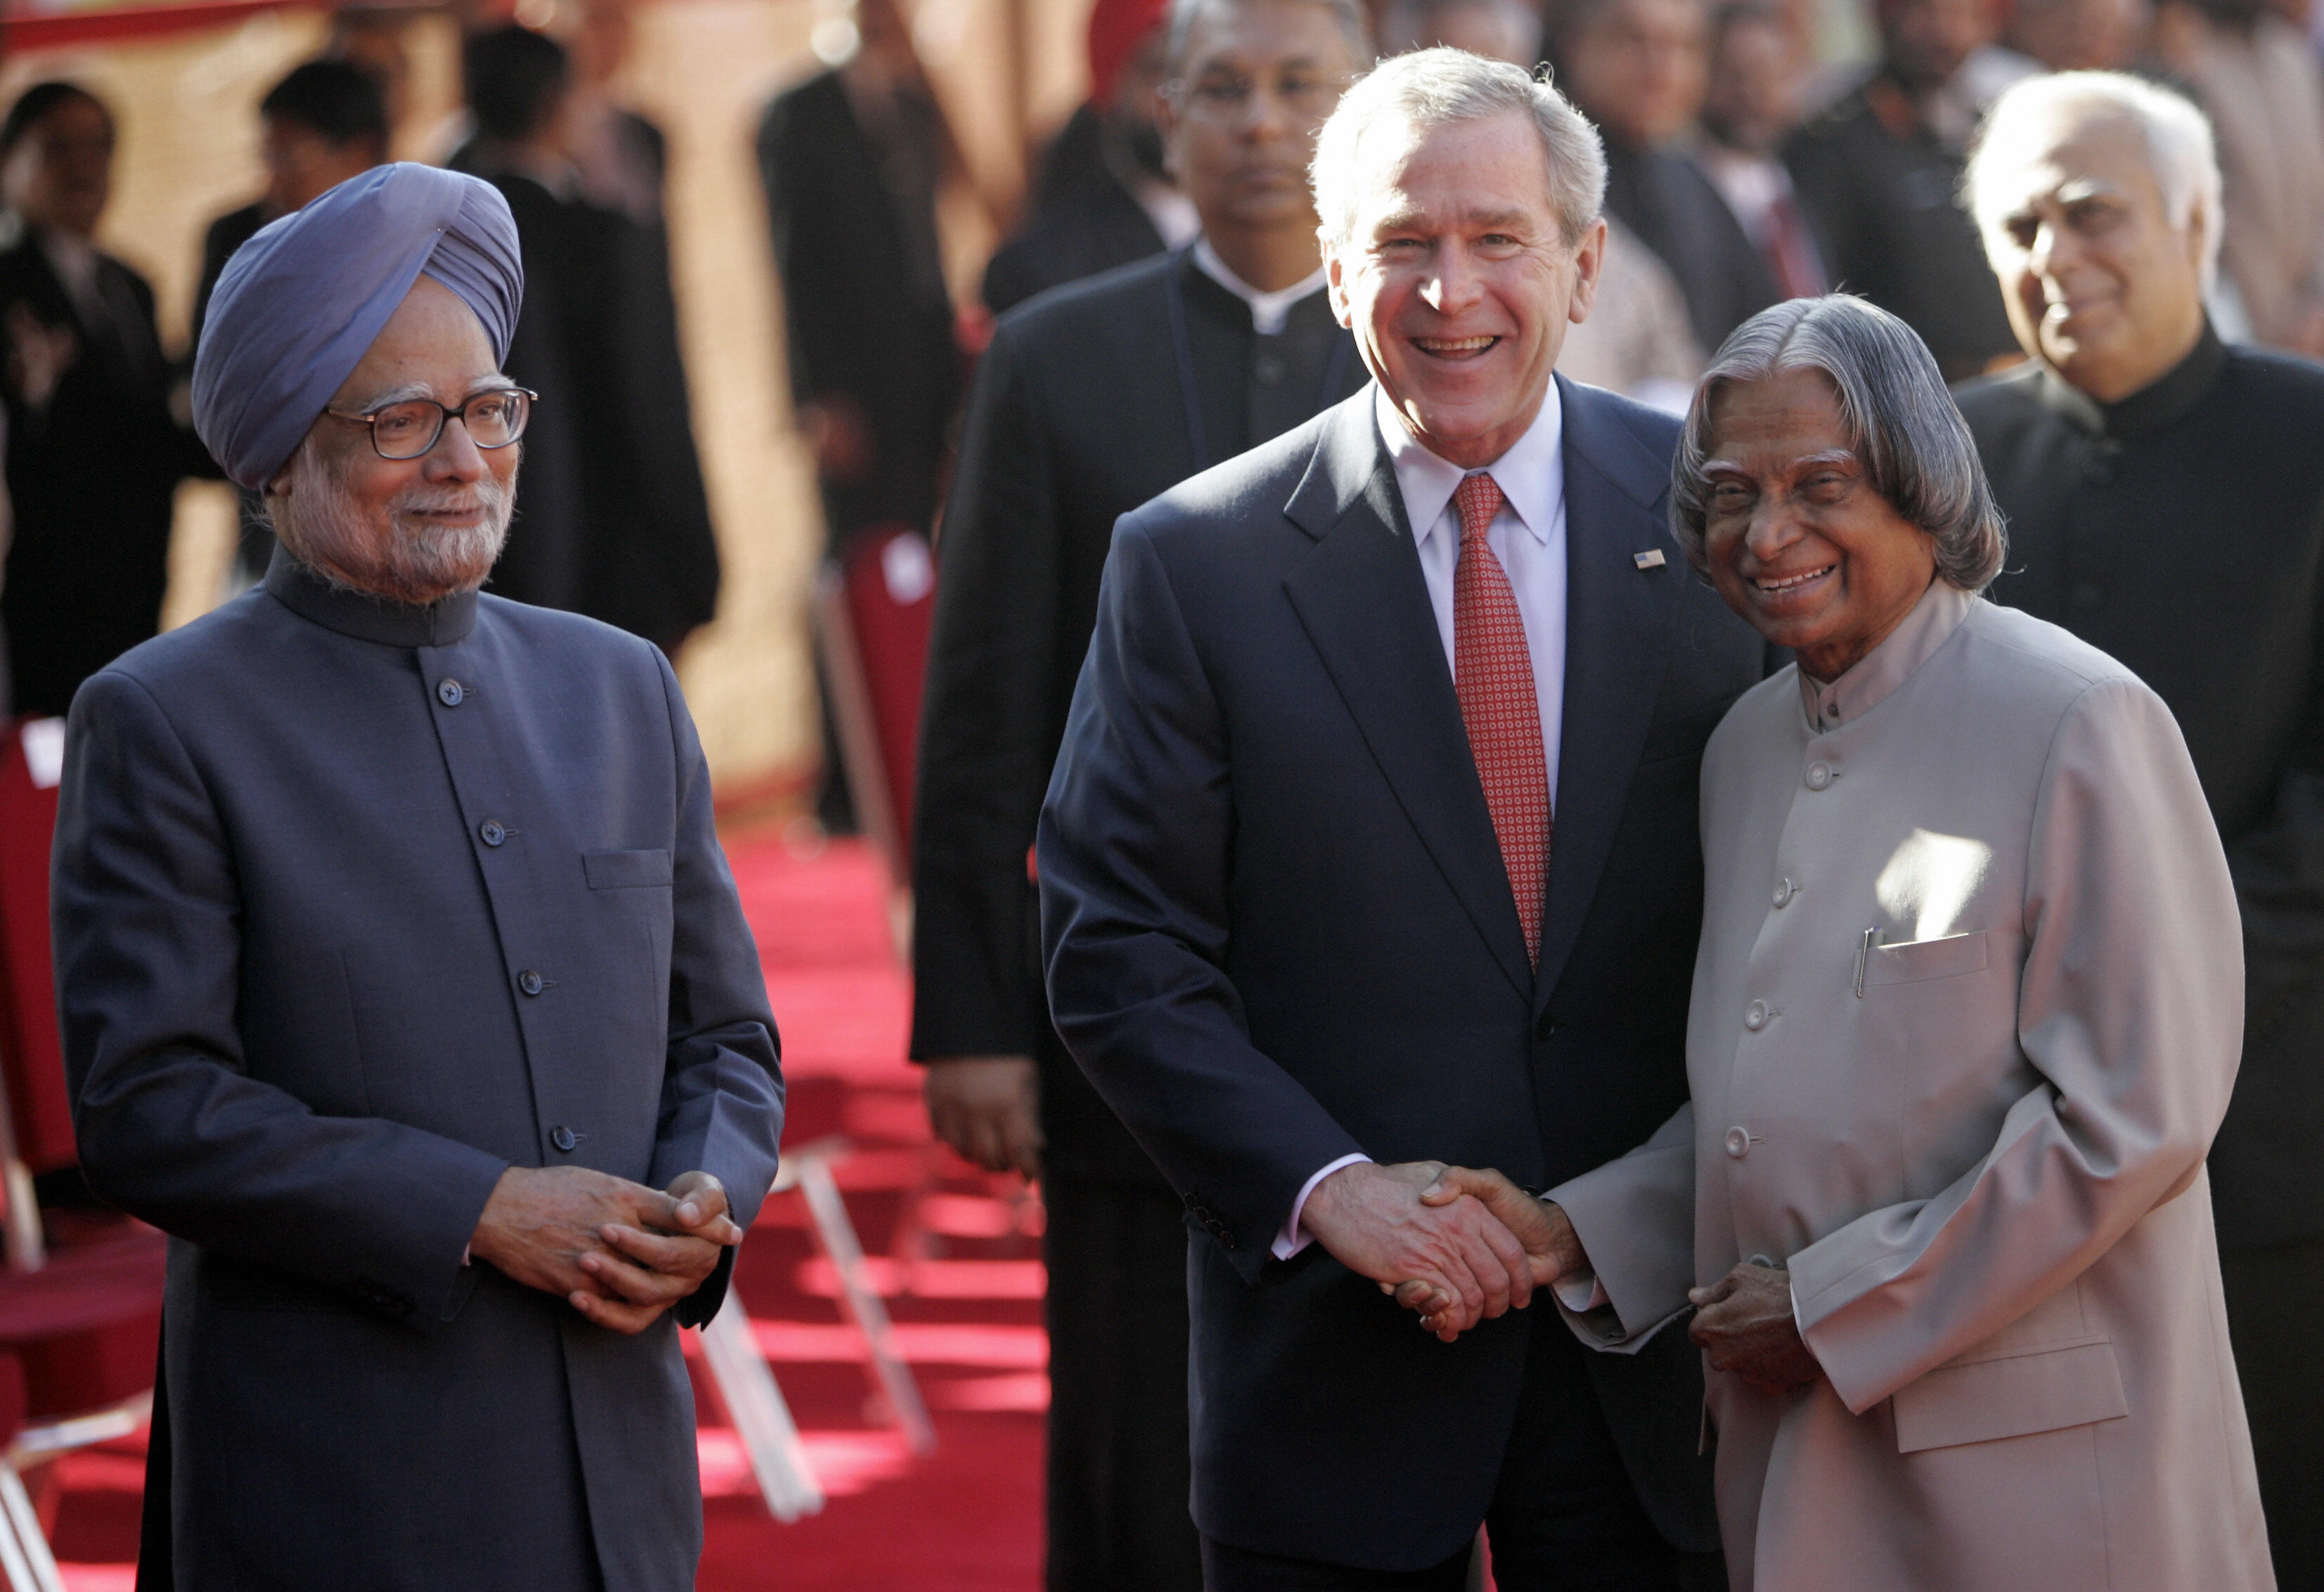 U.S. President George W. Bush shakes hands with Indian President A.P.J. Abdul Kalam while Prime Minister Manmohan Singh looks on during an official welcoming ceremony at the Presidential Palace in New Delhi on March 2, 2006.